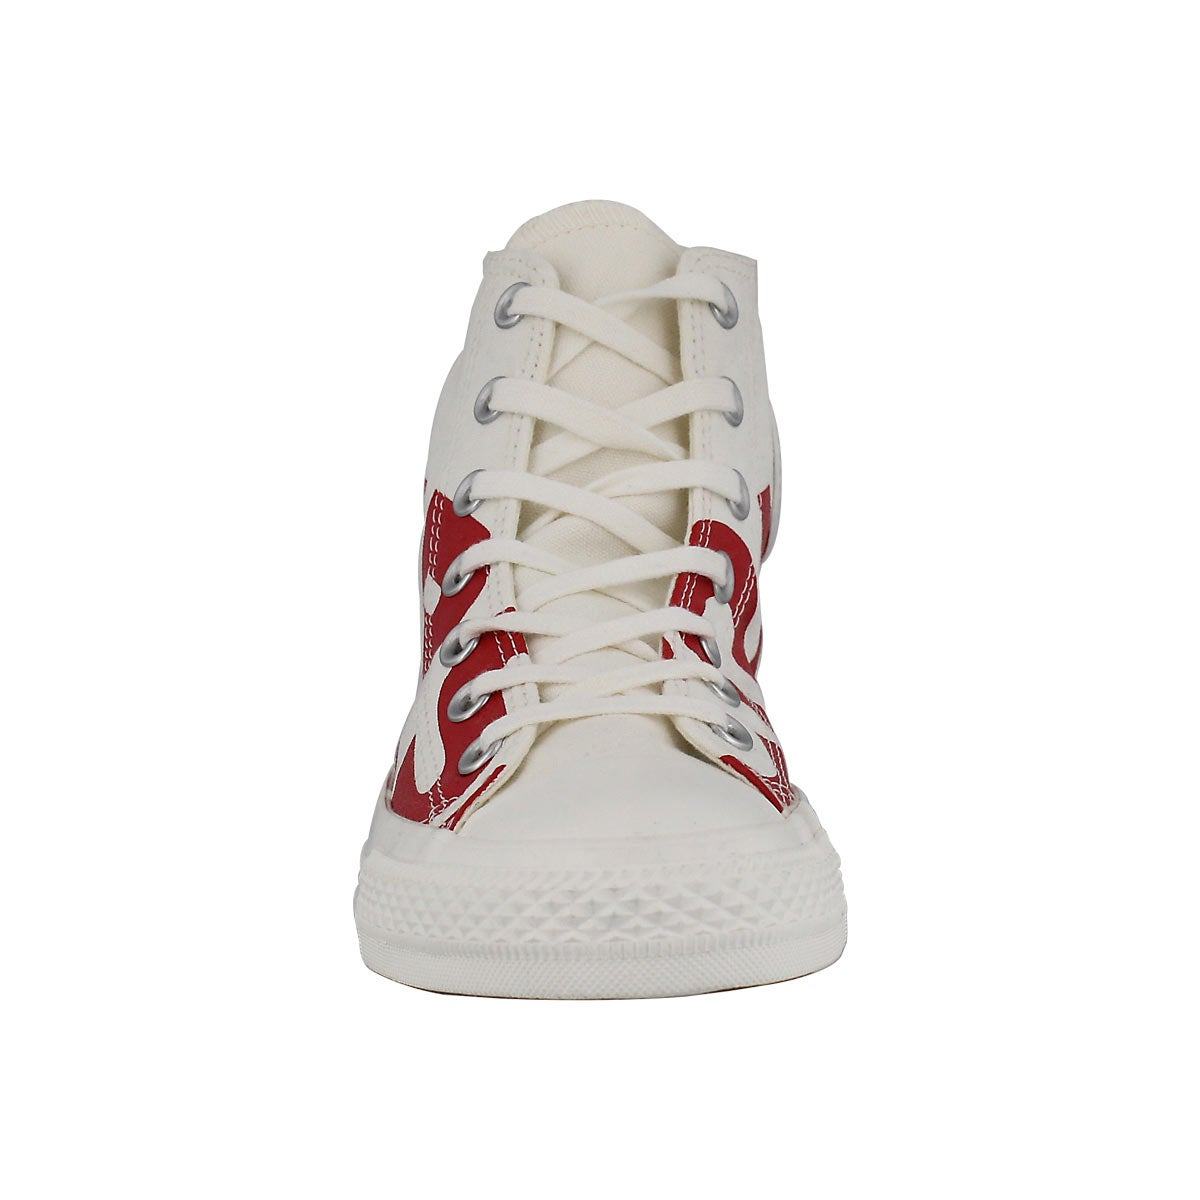 Lds CTAS Wordmark wht/red high top snkr